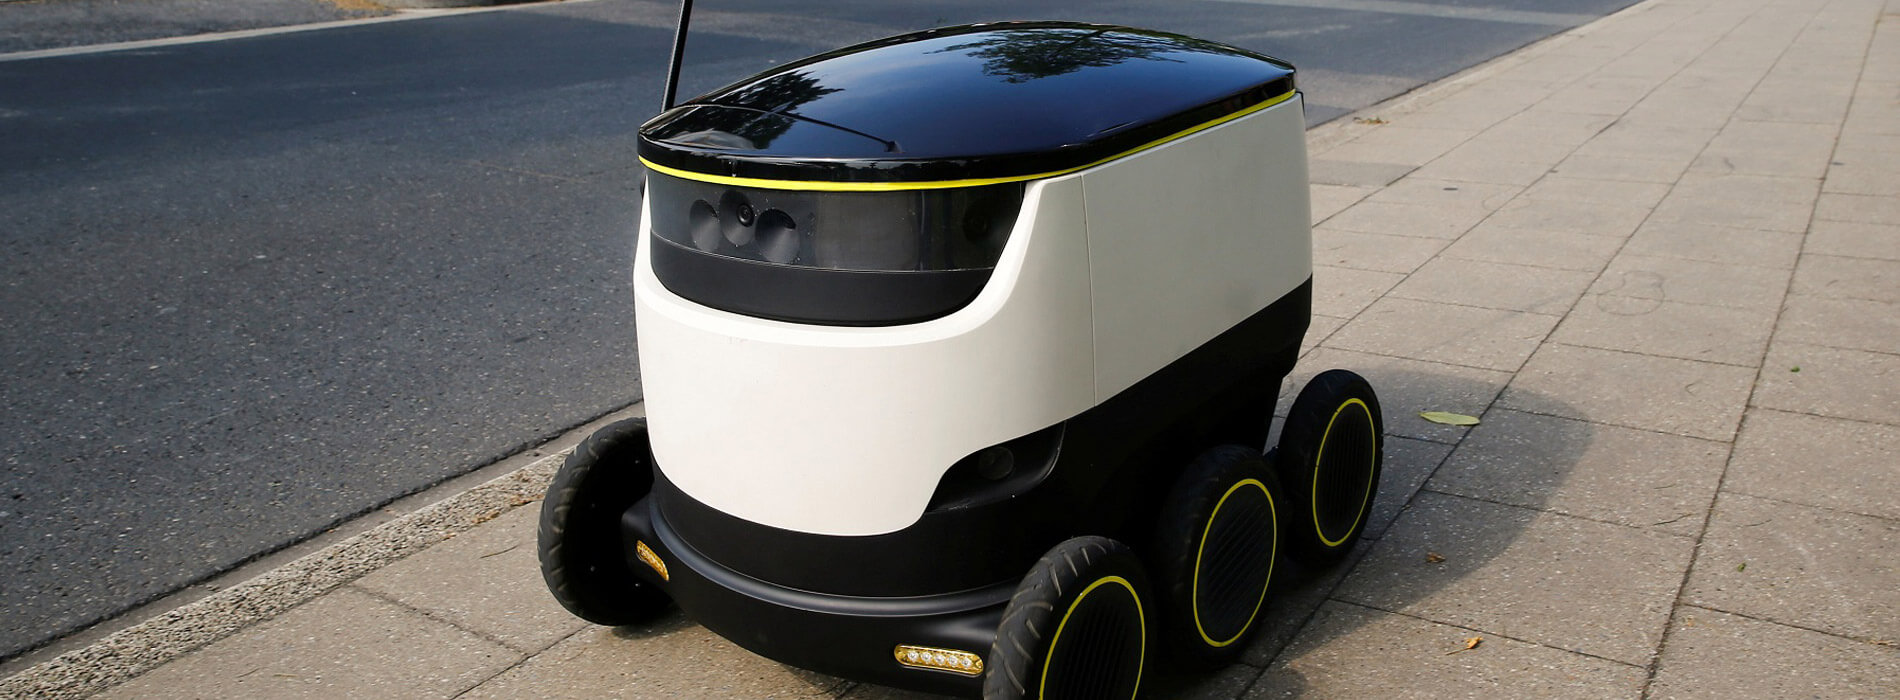 Next Workforce Of On-Demand Delivery In An Automated World